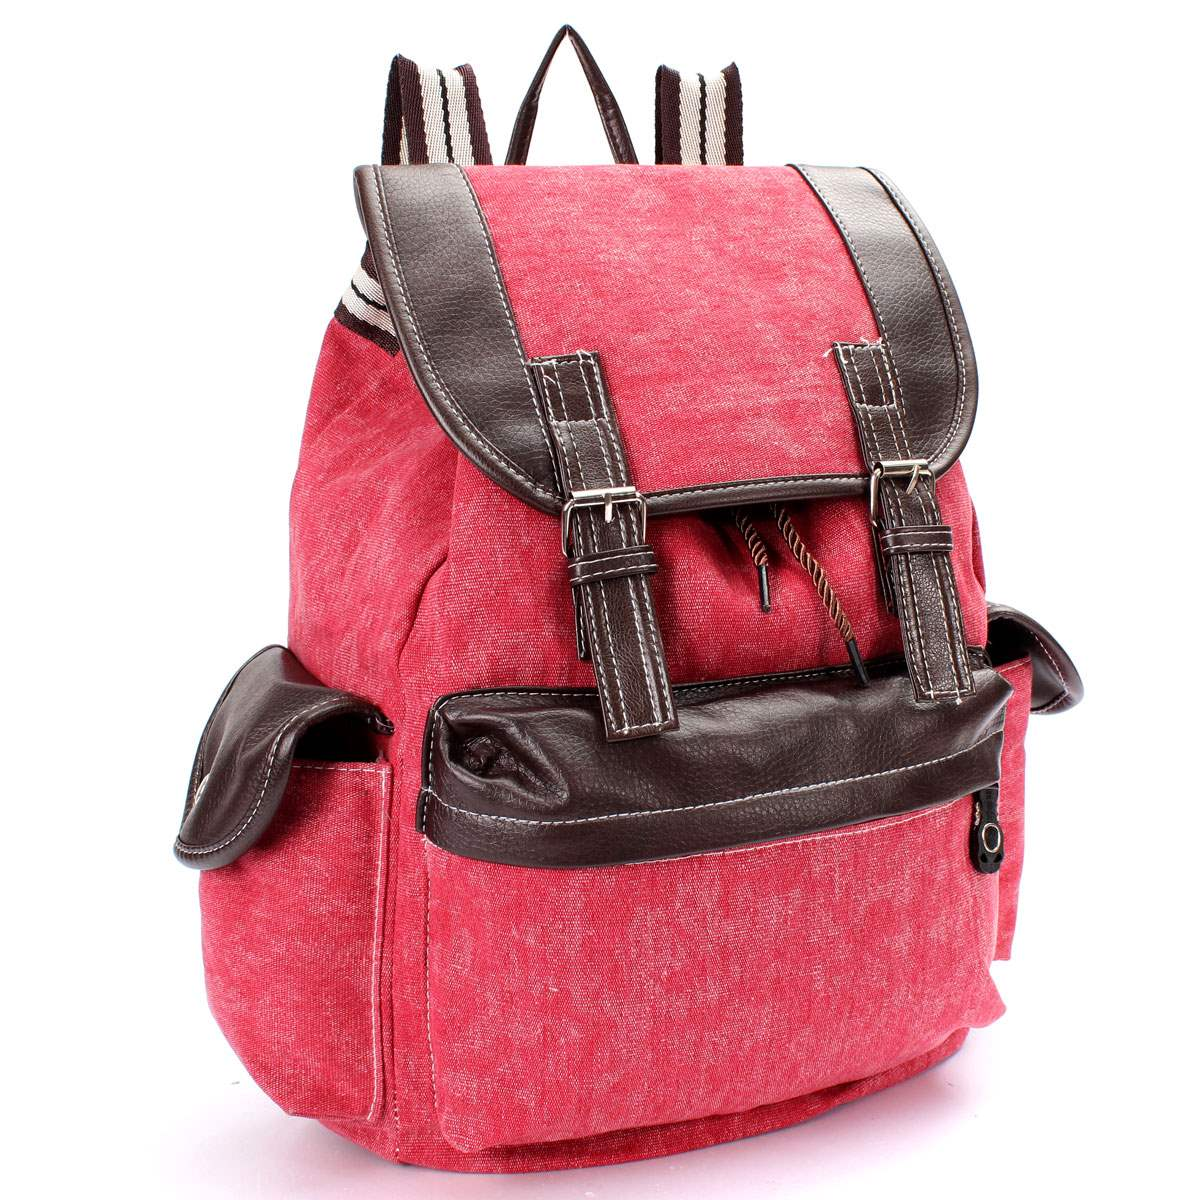 Aliexpress.com : Buy Fashion Vintage Rucksack Backpack Men Women ...